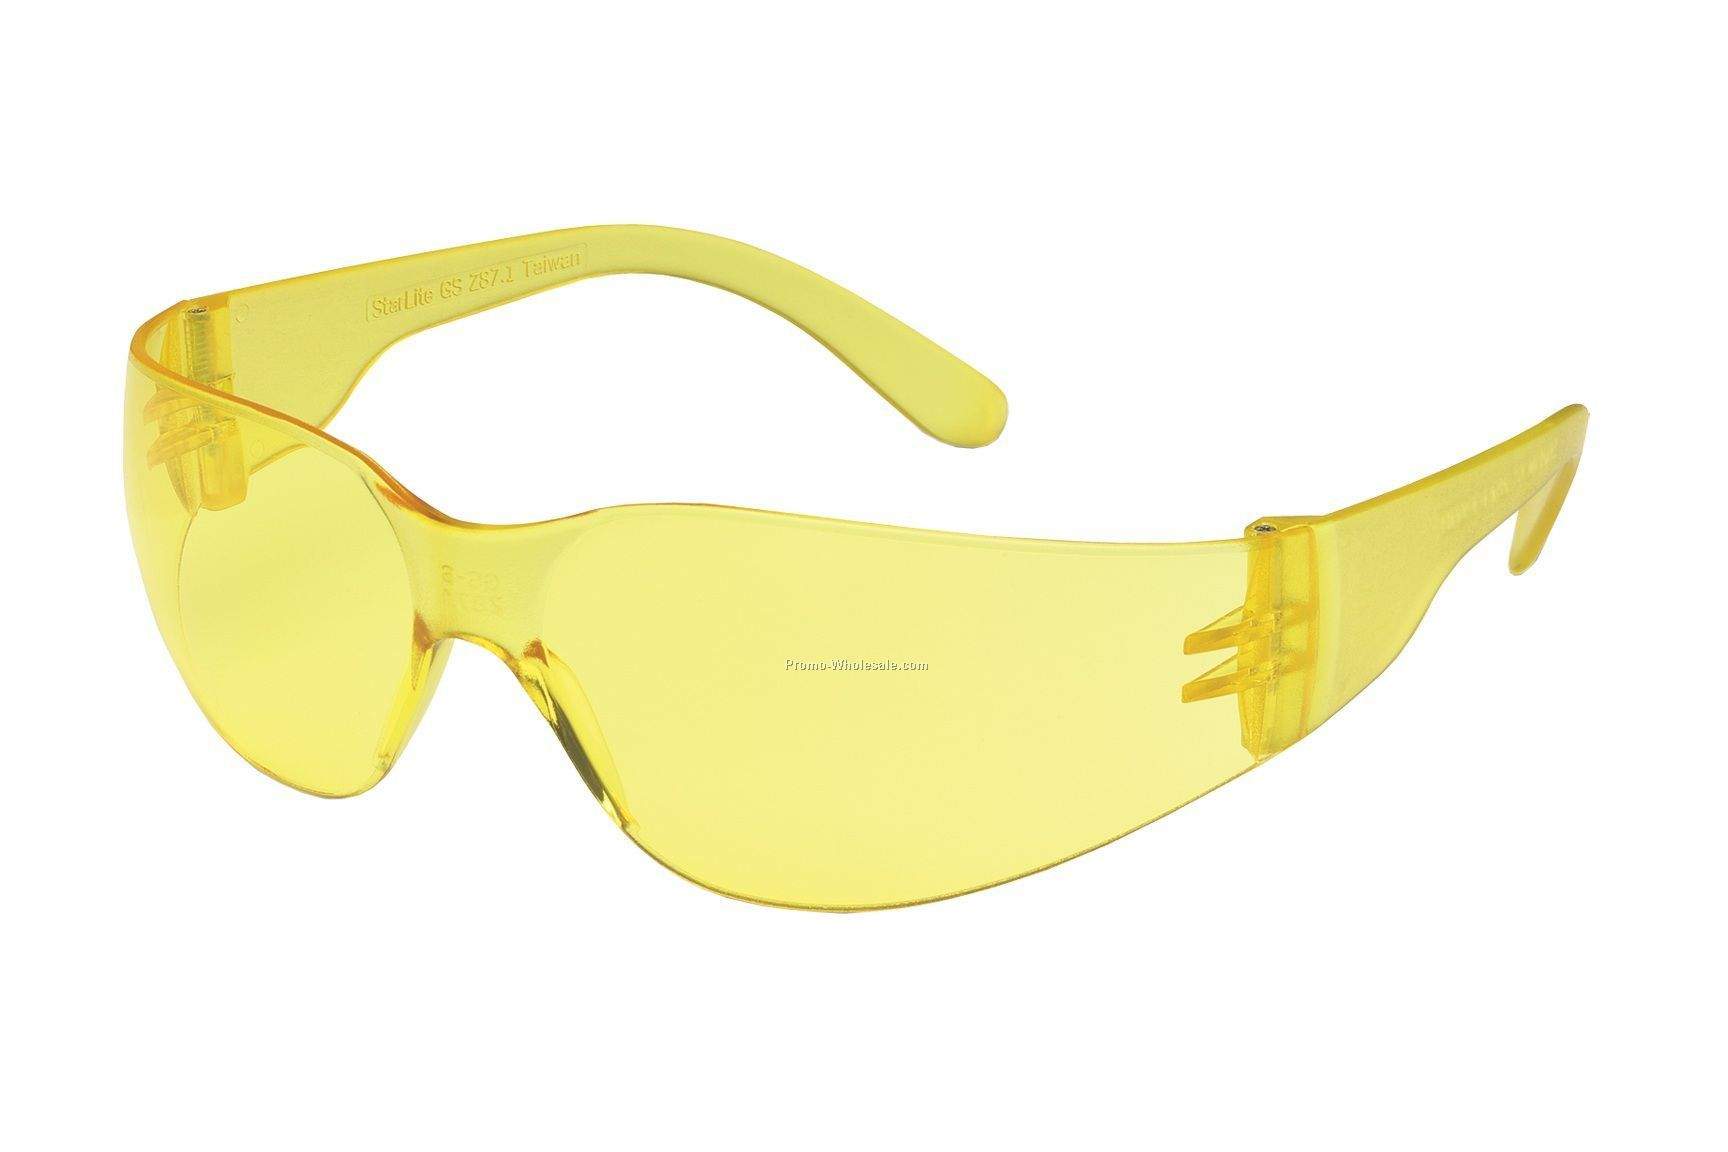 Eyewear and Safety Glasses from Cole-Parmer